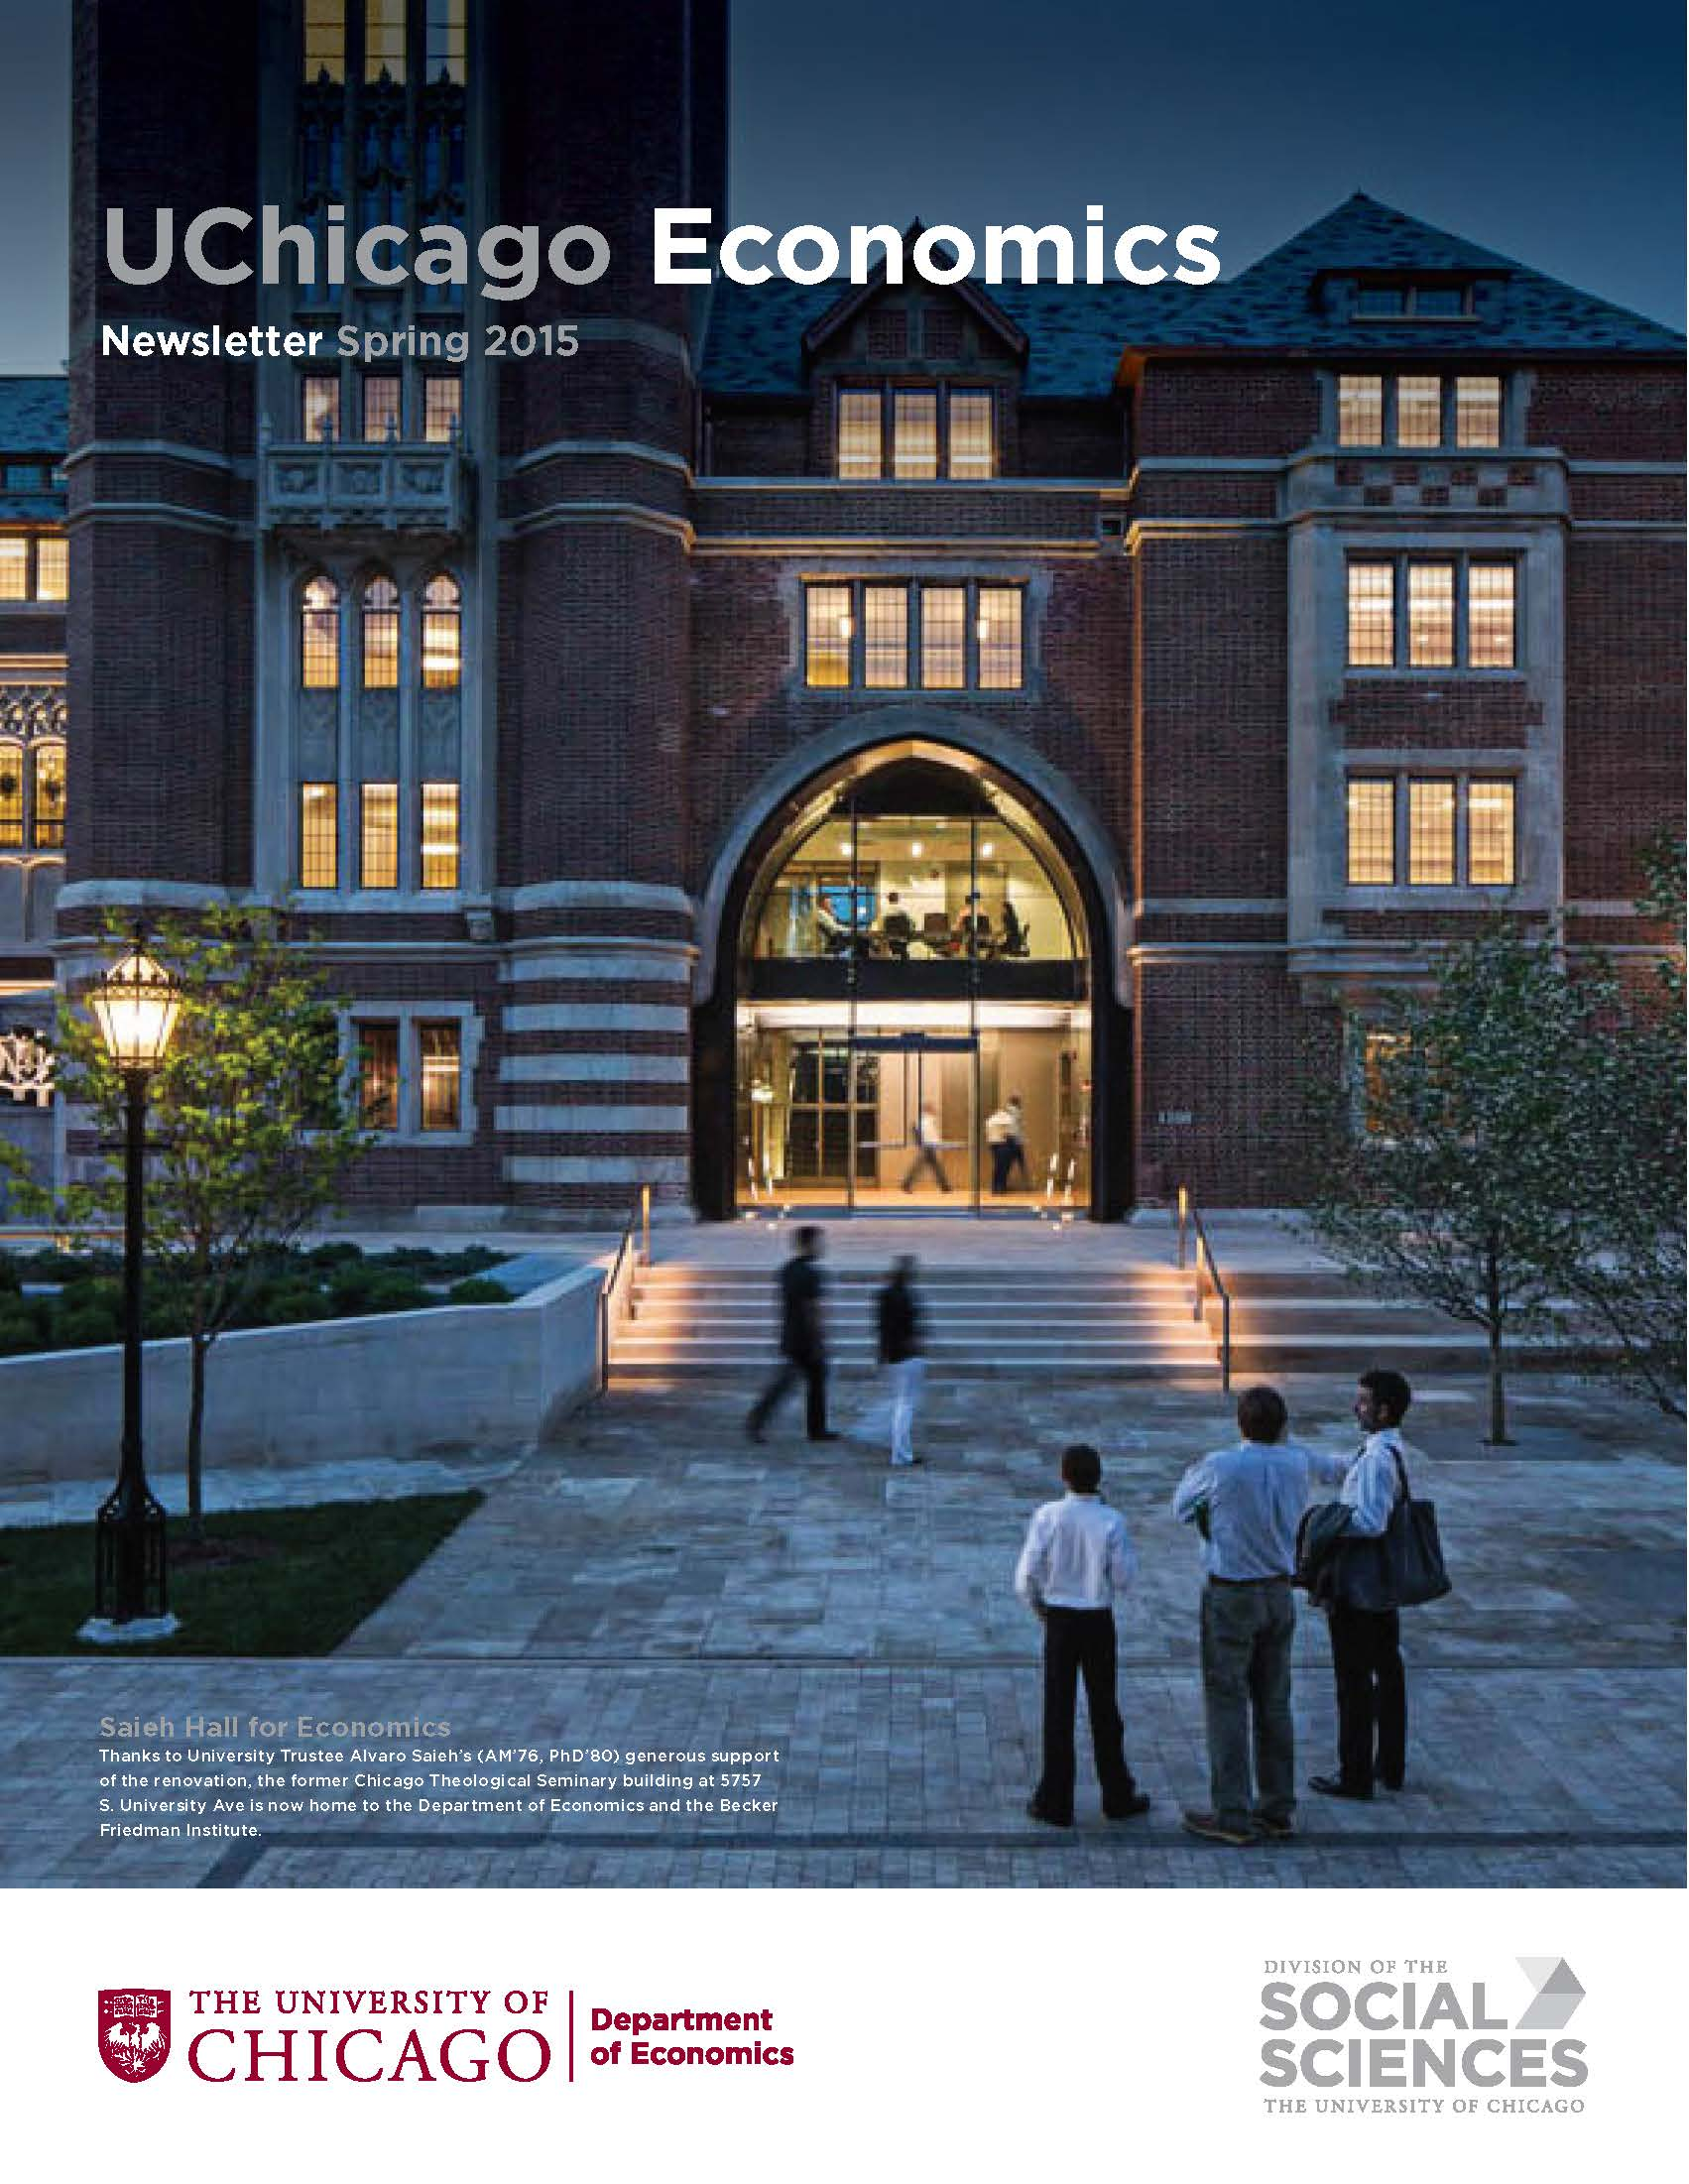 UChicago Economics Newsletter Vol 1 Issue 1 Spring 2015_Page_1.jpg